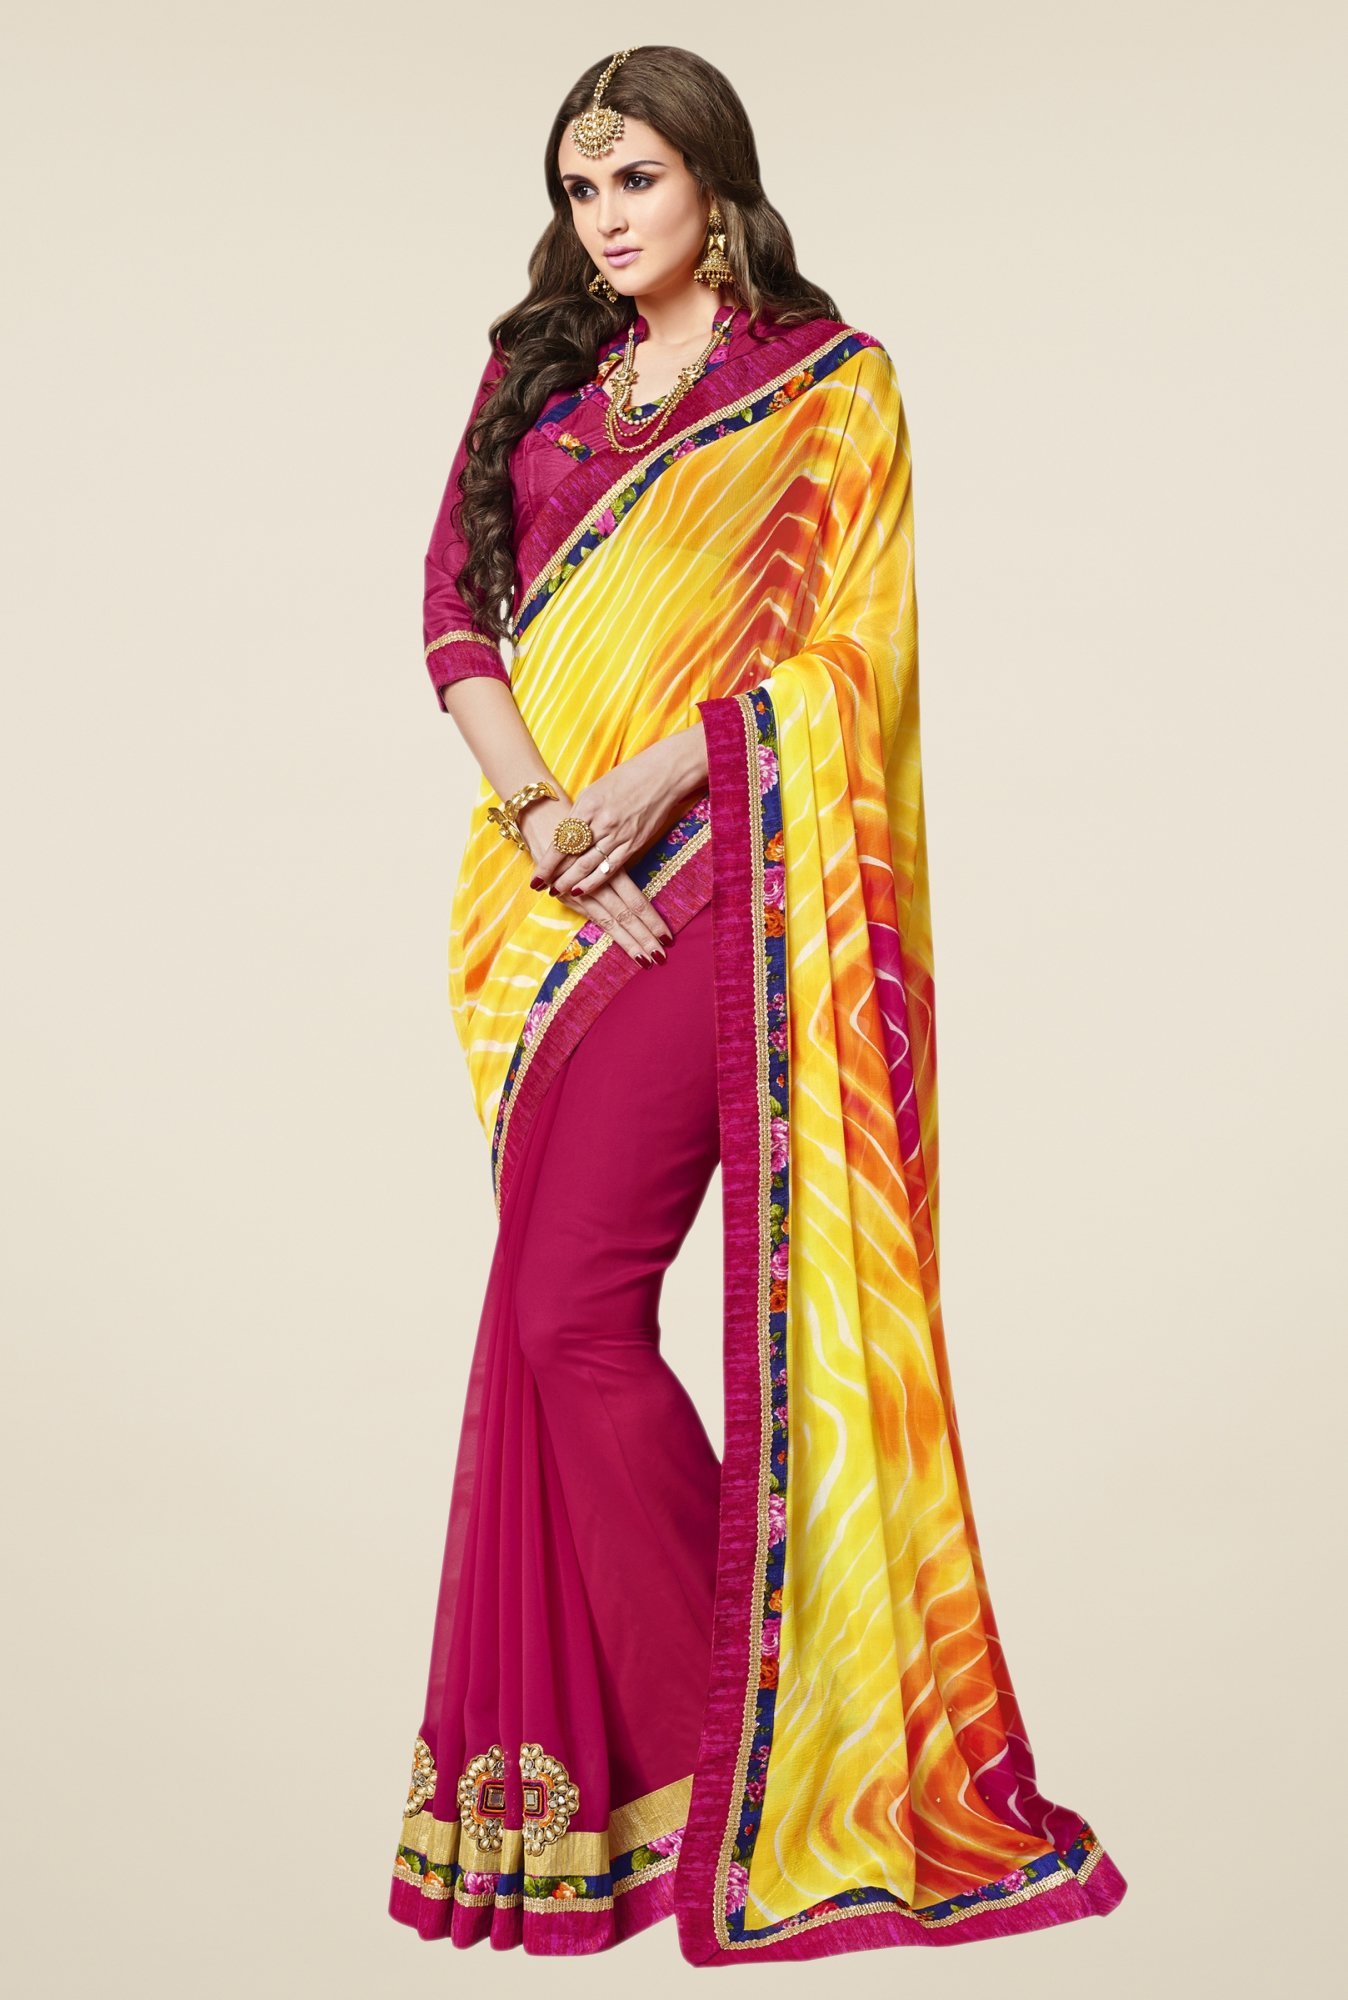 Triveni Amiable Magenta & Yellow Faux Georgette Saree